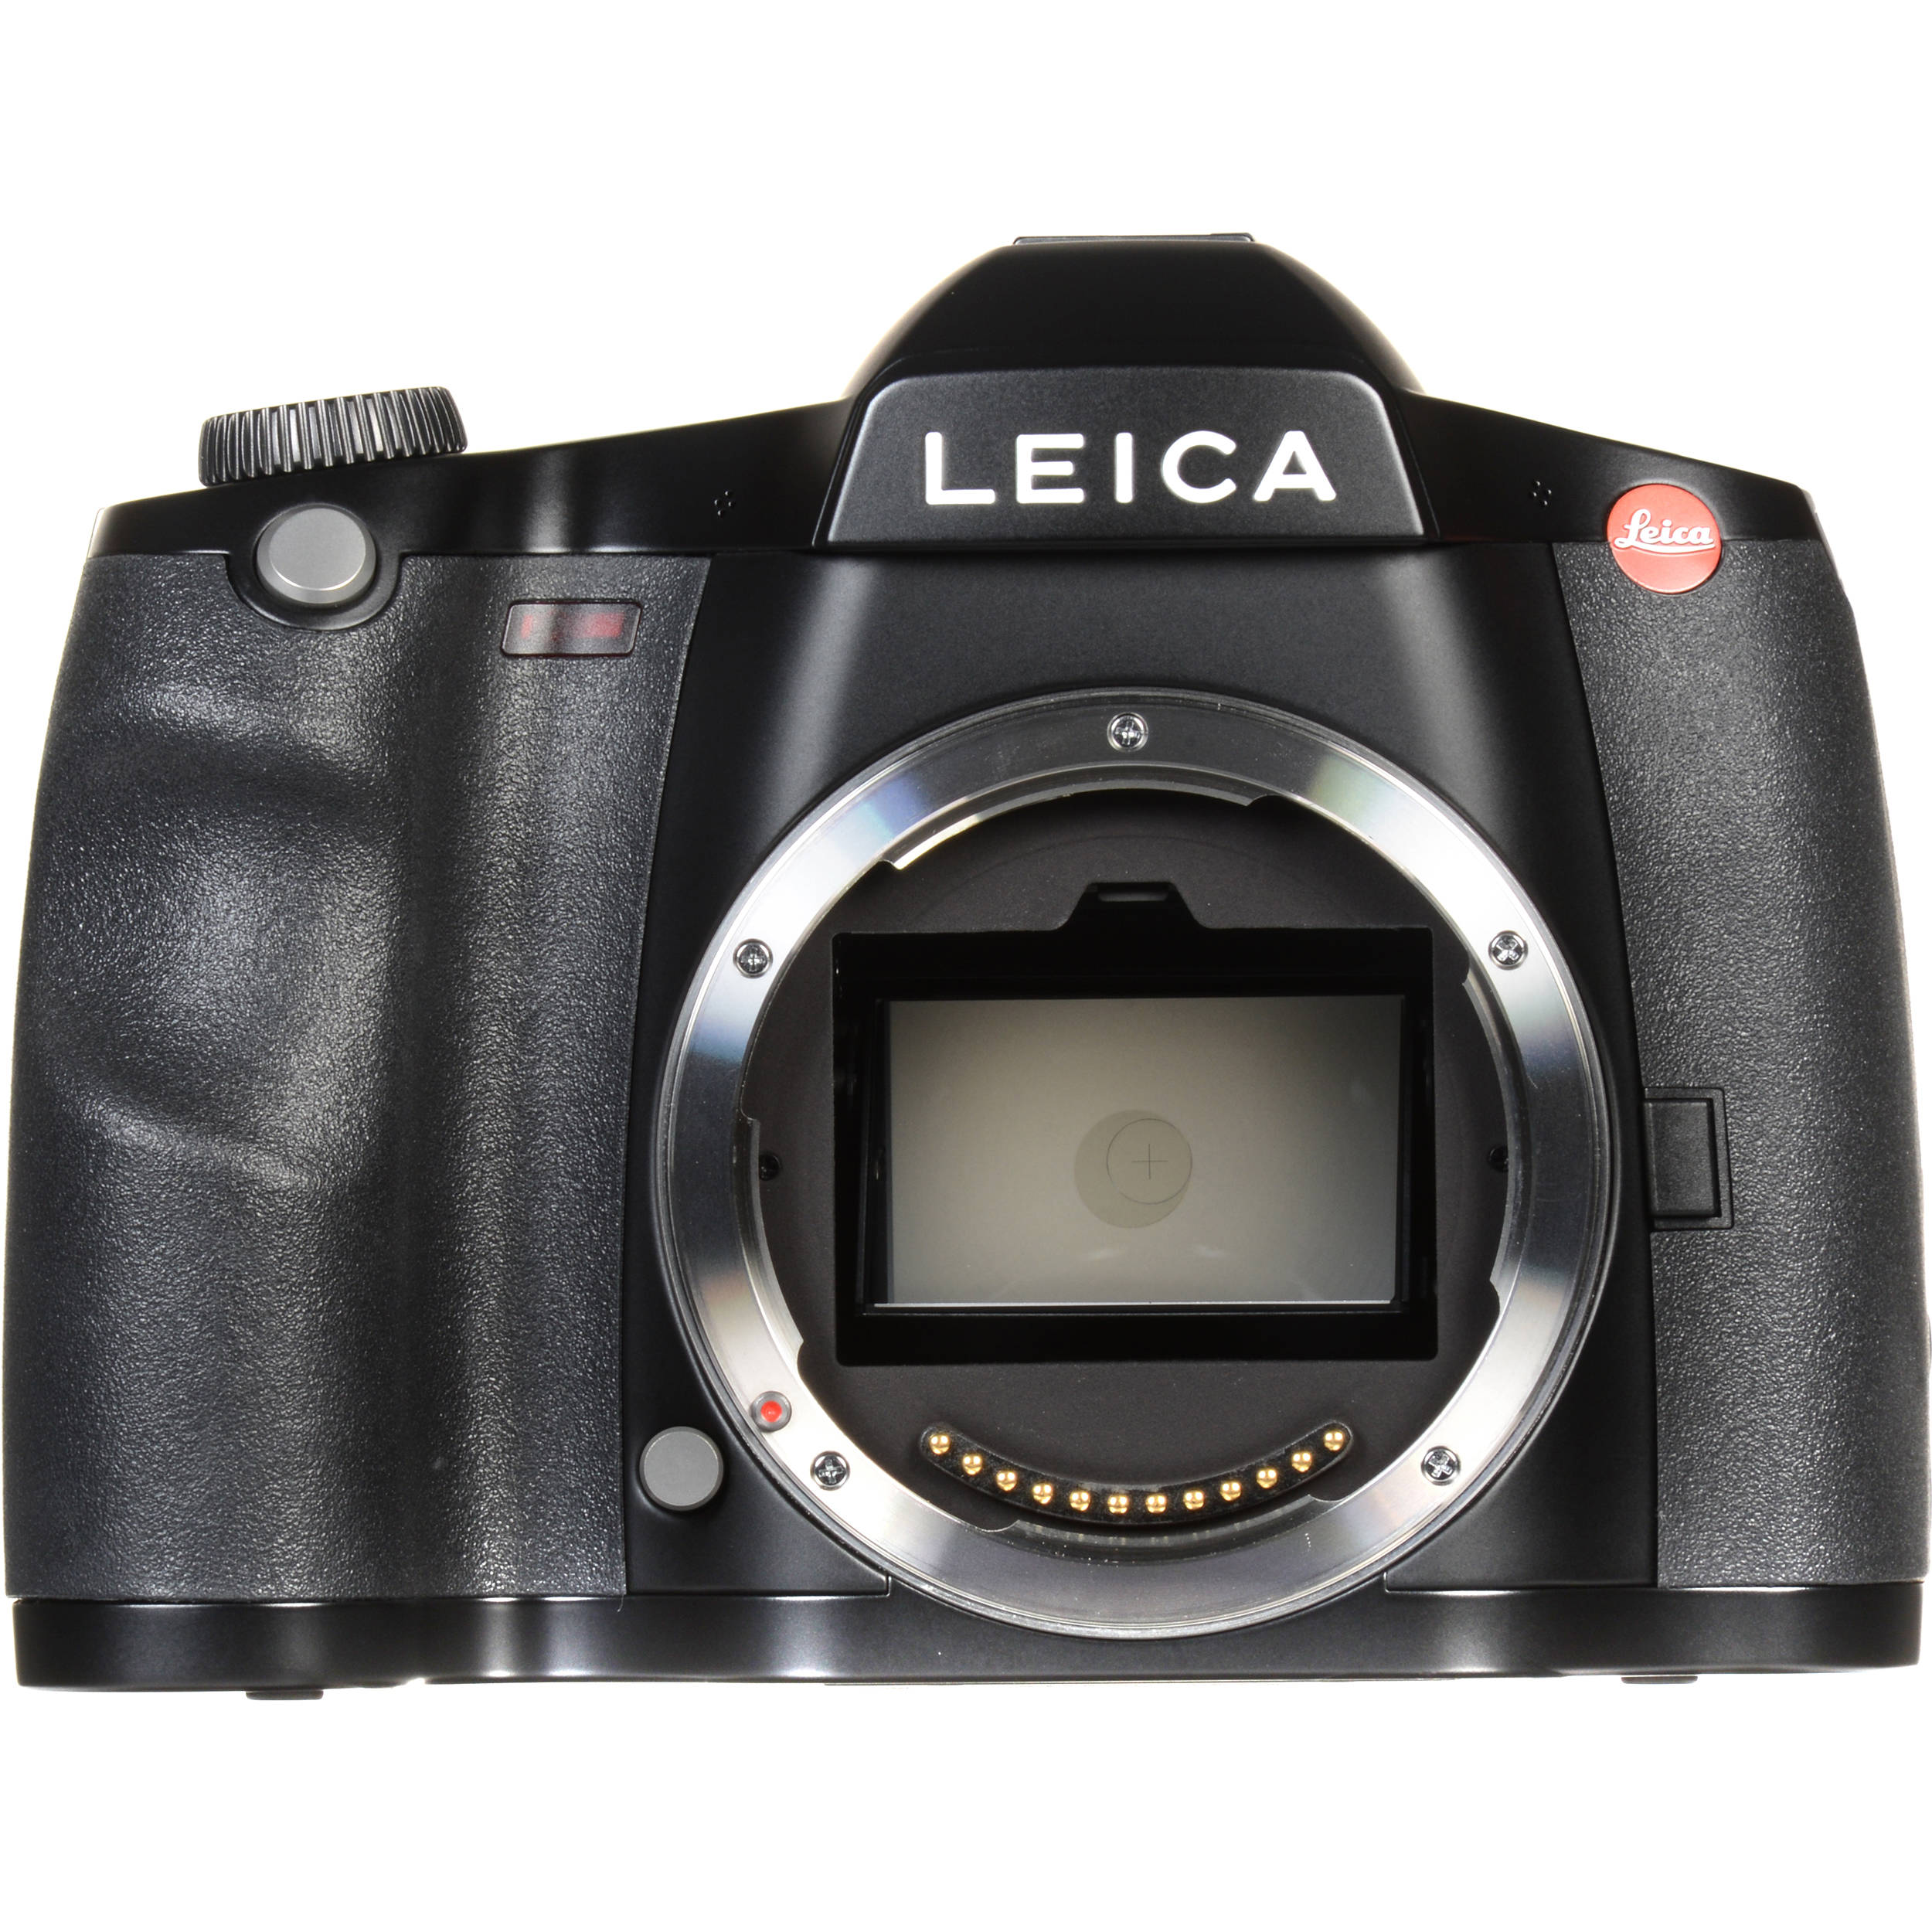 Camera Dslr Camera Lens Types leica s typ 007 medium format dslr camera body only 10804 only